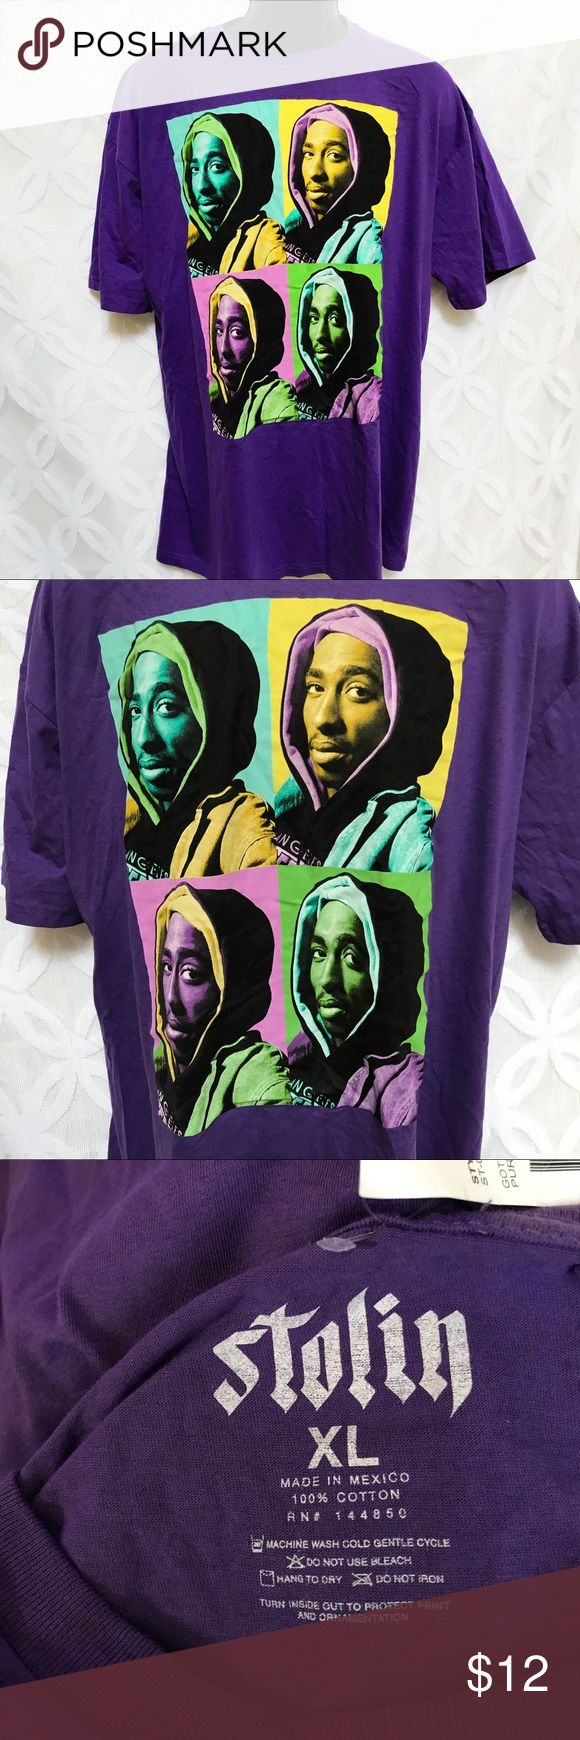 "2Pac Tupac  Shakur Got Purple Juice Tee NWT 2Pac Tupac  Shakur Got Purple Juice Tee NWT                             Measurements Laying Flat Size 🔹XL Armpit to Armpit 🔹24"" Shoulder to Hem 🔹33"" Bundle to Save 🤓 Sorry NO outside transactions 🚫 NO trades 🚫 Reasonable Offers welcomed 👍 NO Low balling 👎 NO modeling 👎 NO Holds👎 All items from a pet 😼and Smoke Free Home  Happy Poshing 🤗 Stolin Shirts Tees - Short Sleeve"